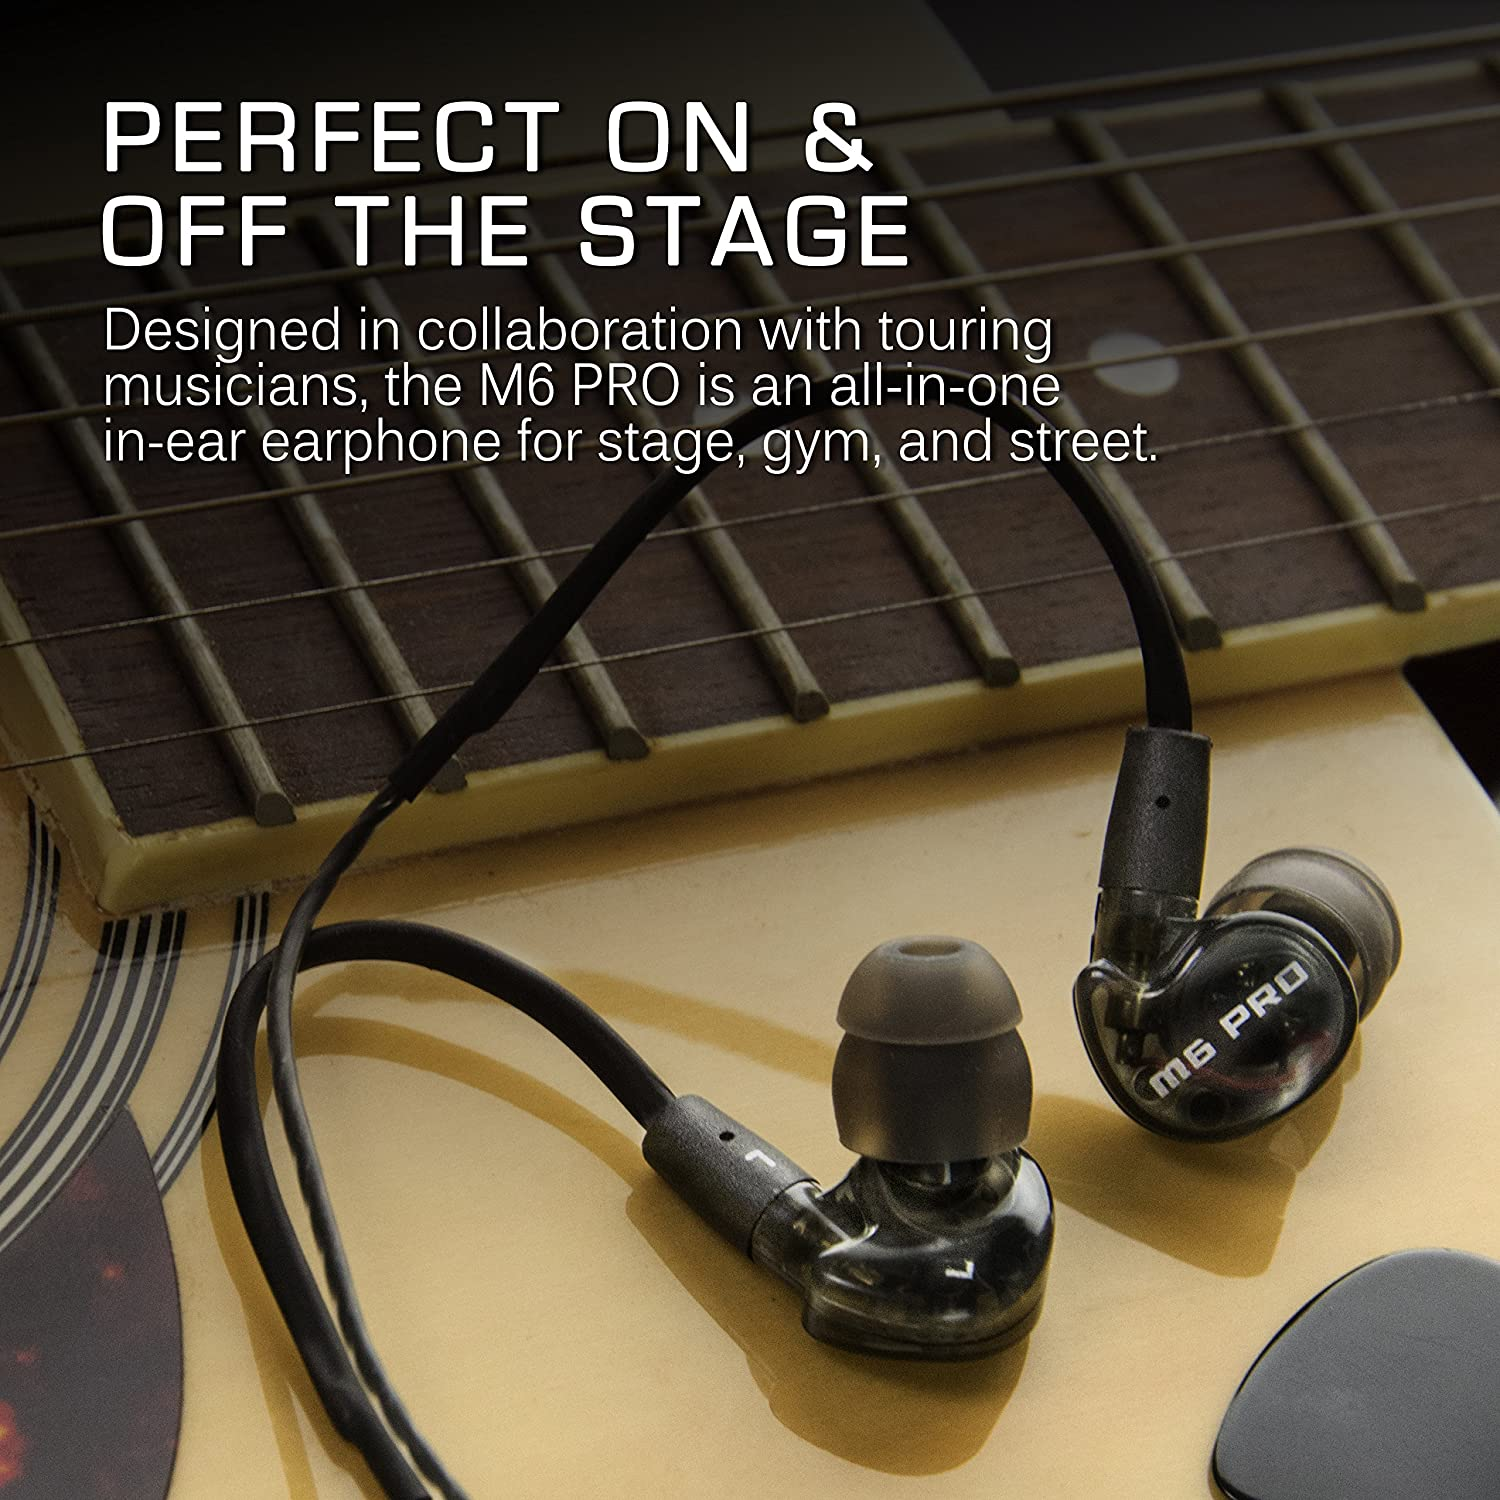 MEE audio M6 PRO Universal-Fit Noise-Isolating Musician's in-Ear Monitors